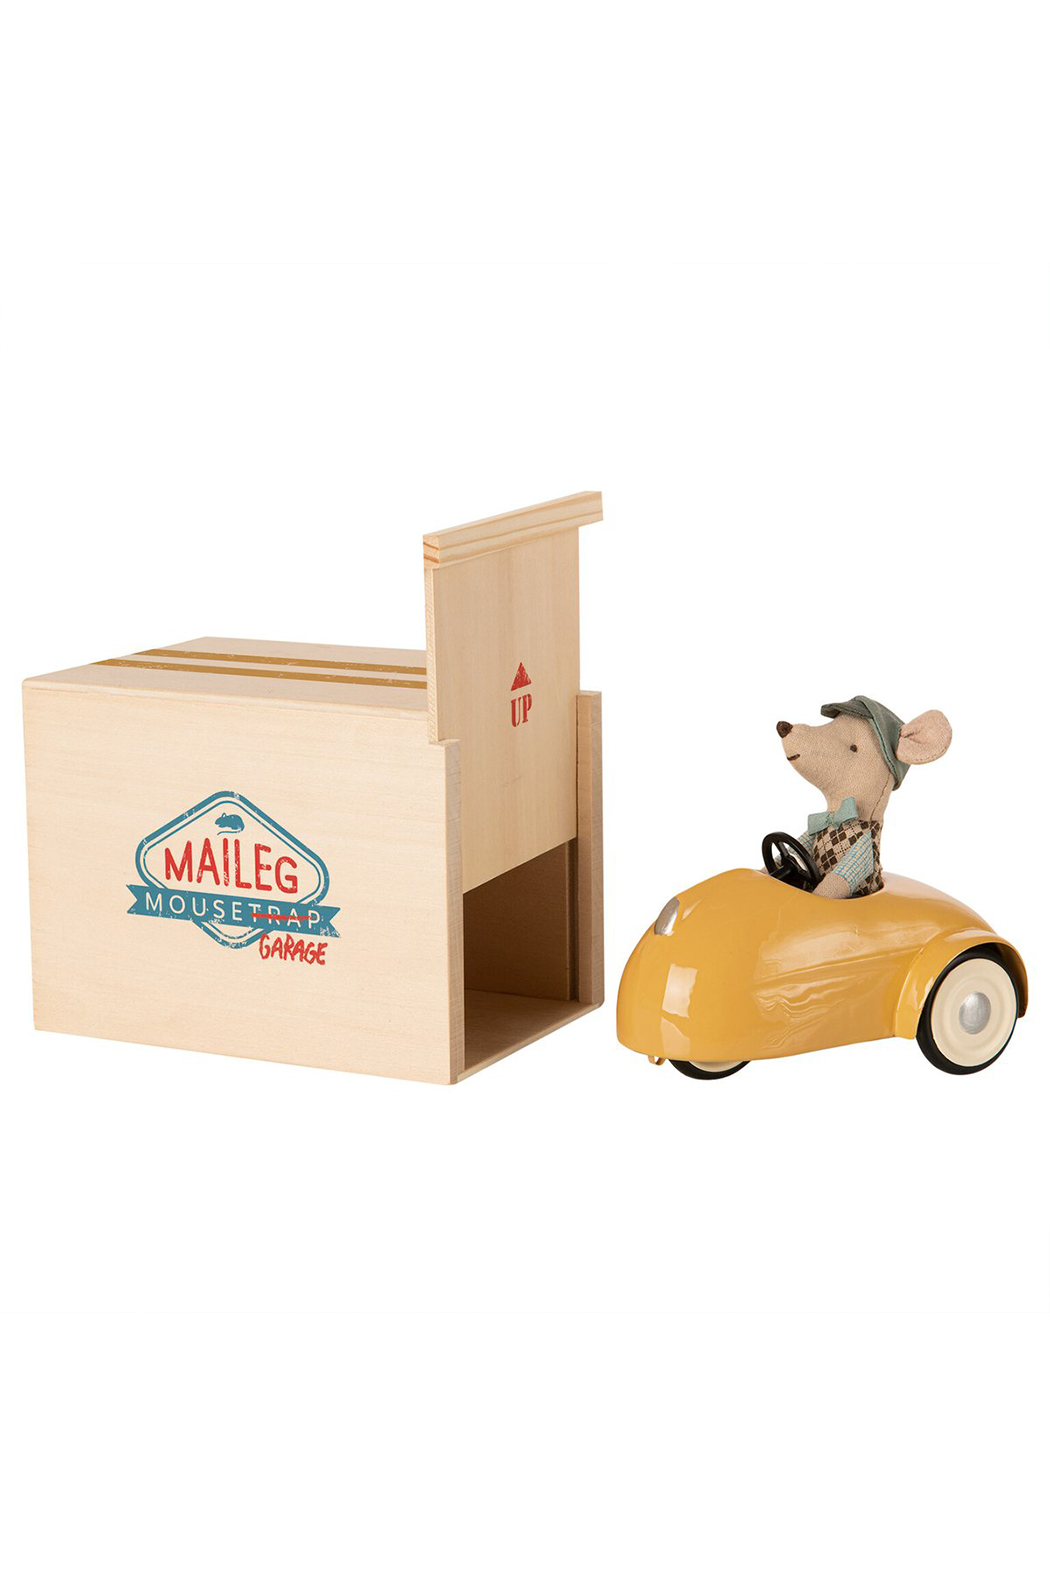 Maileg Mouse Car With Garage - Yellow - Main Image